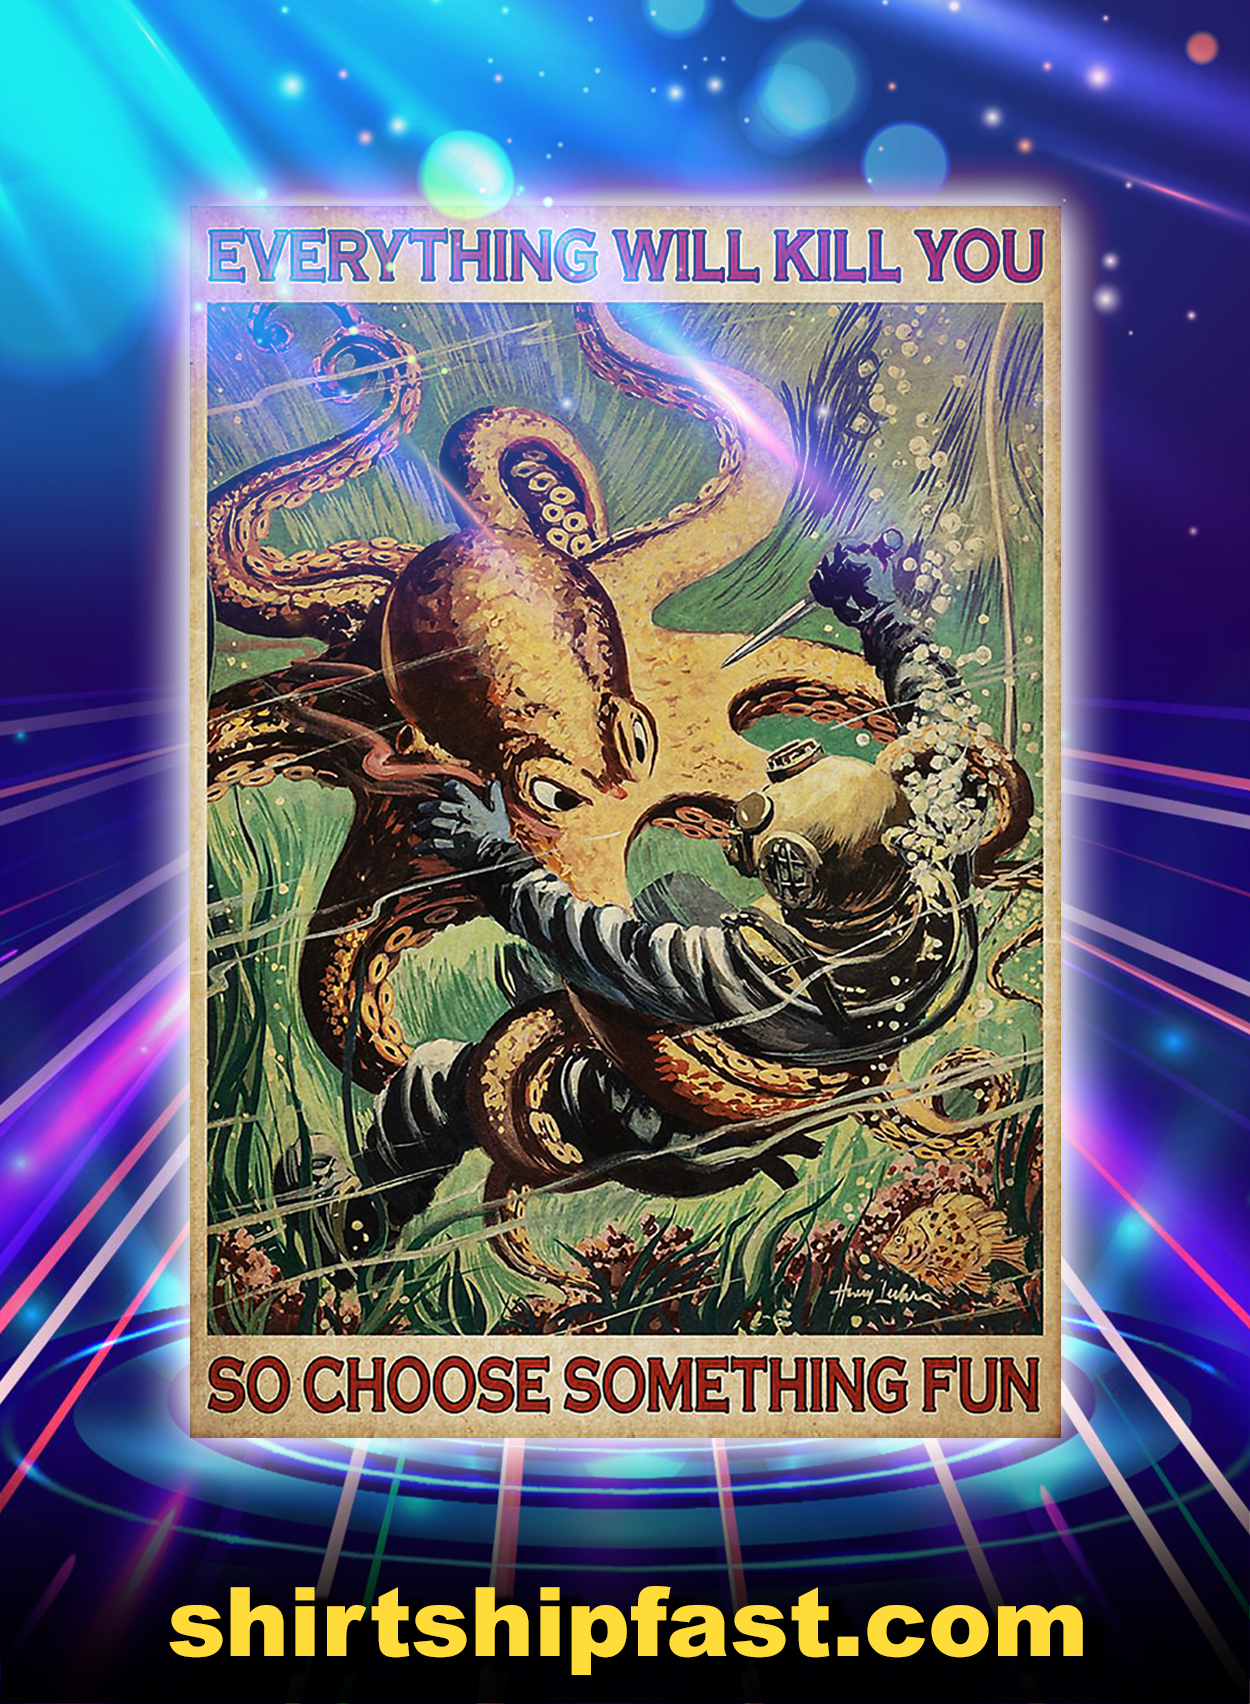 Diver And Octopus Everything Will Kill You Poster - A2